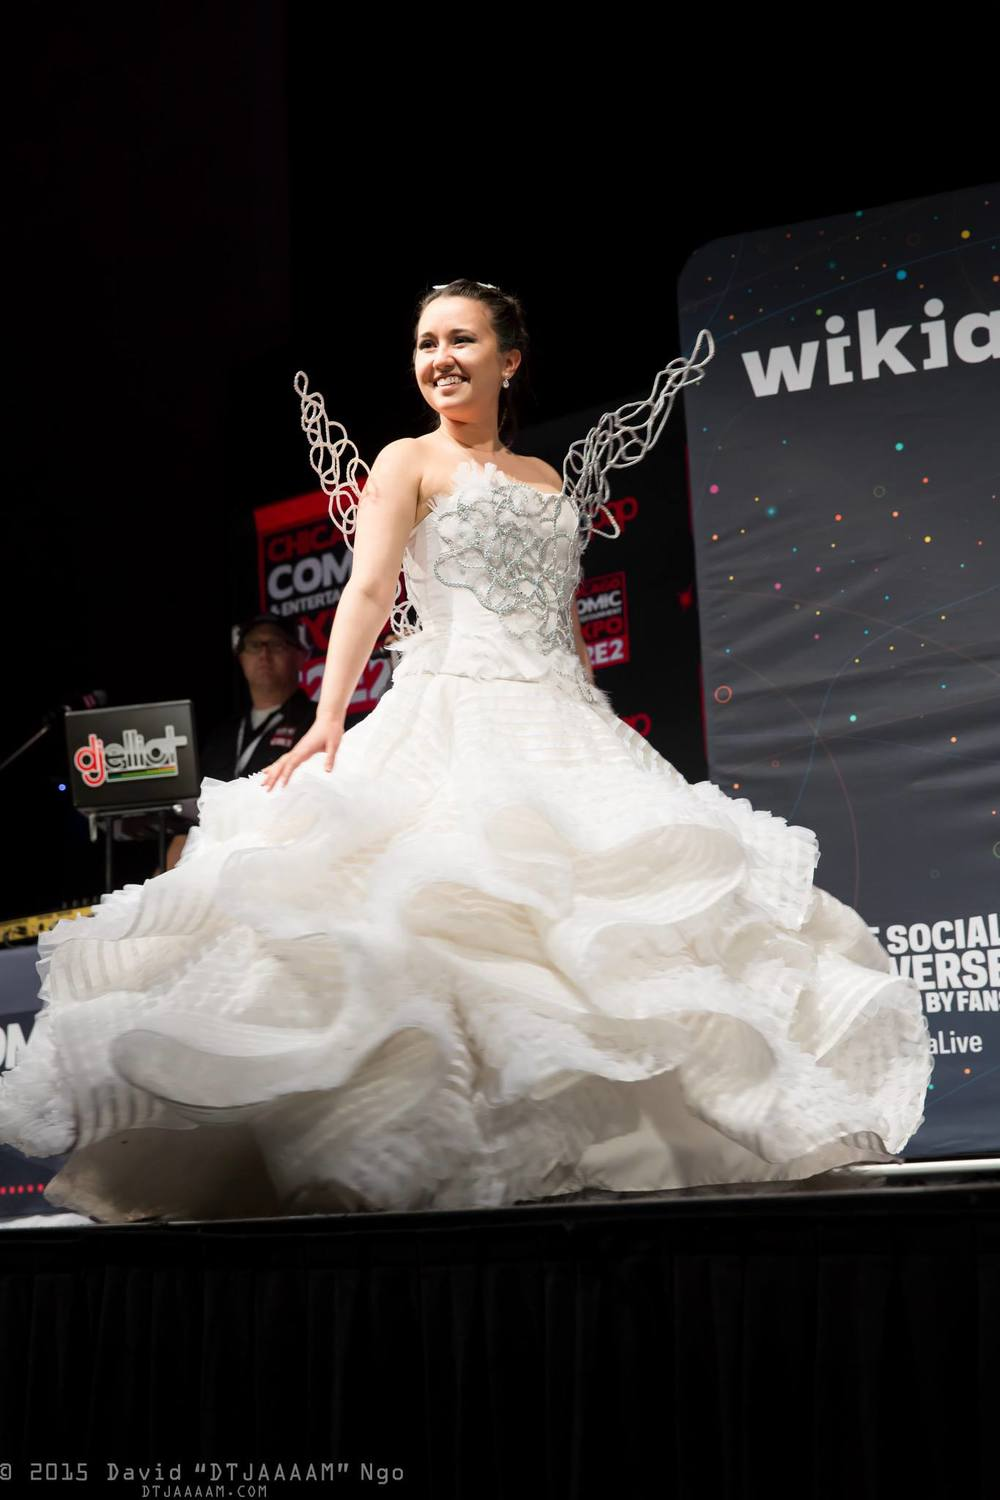 Wedding Katniss Wedding Dress katniss everdeen wedding dress bonkyubombgirl studios this is currently for sale measurements pricing please contact me at bonkyubombgirlgmail com